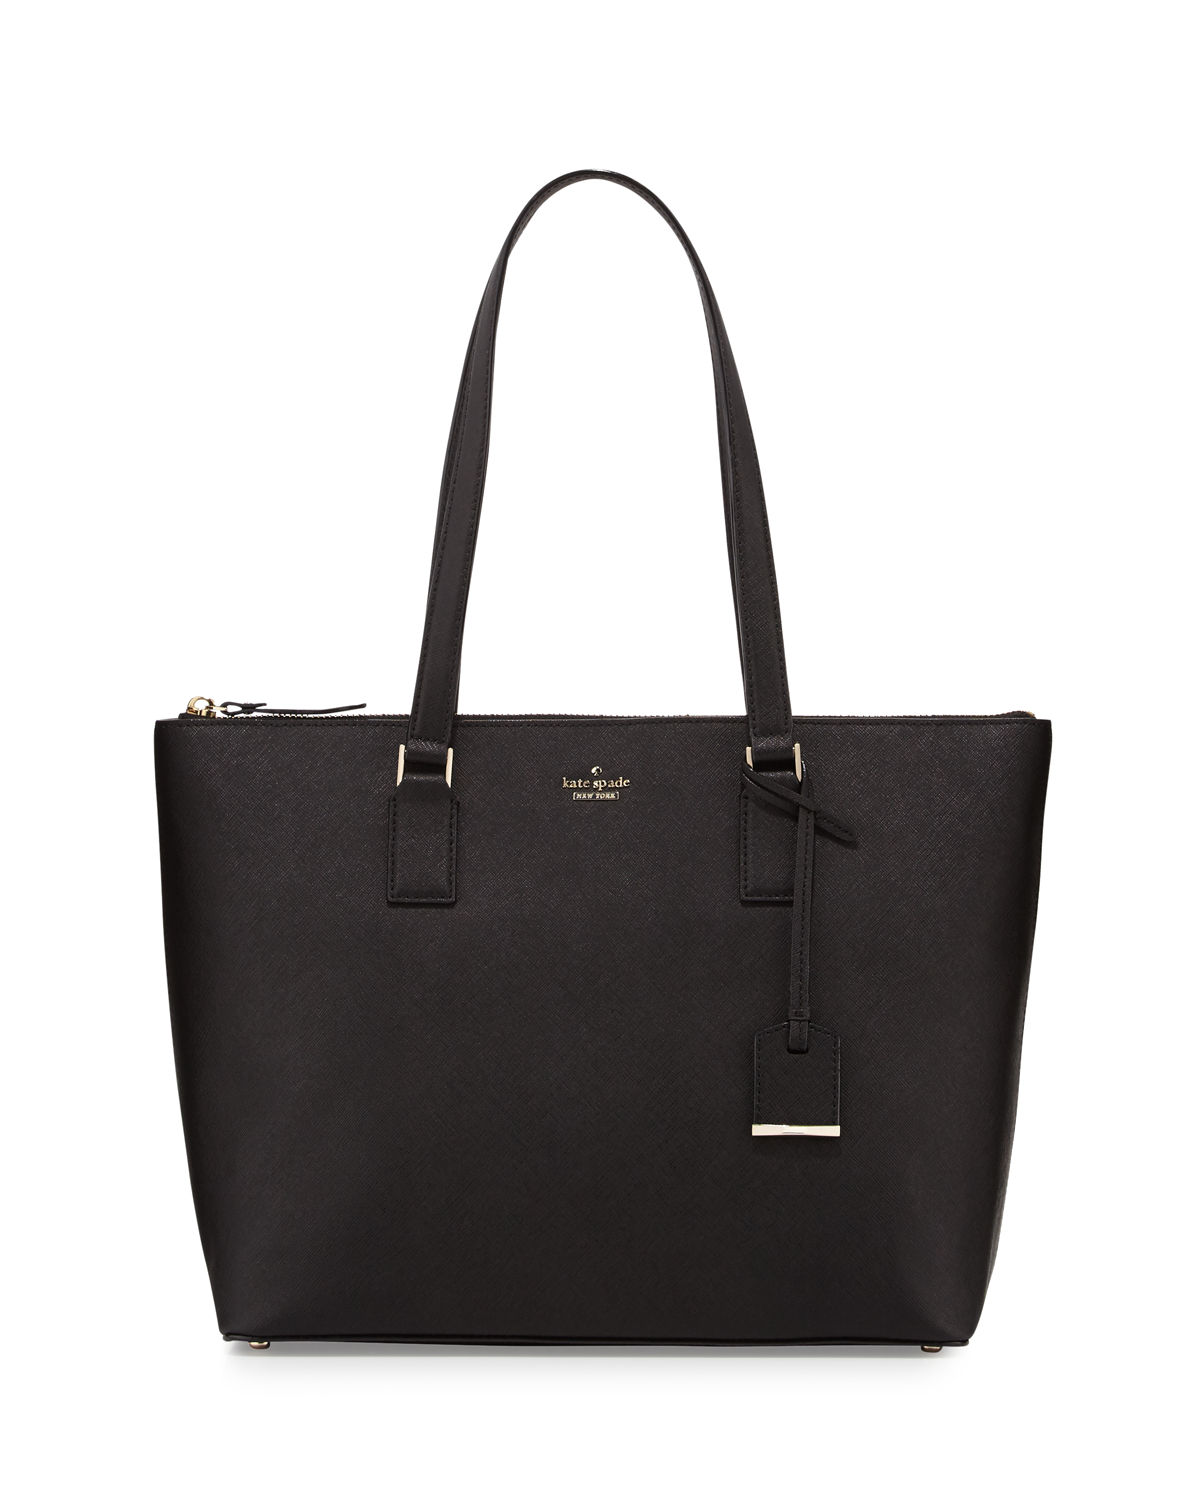 cameron street lucie leather tote bag, black